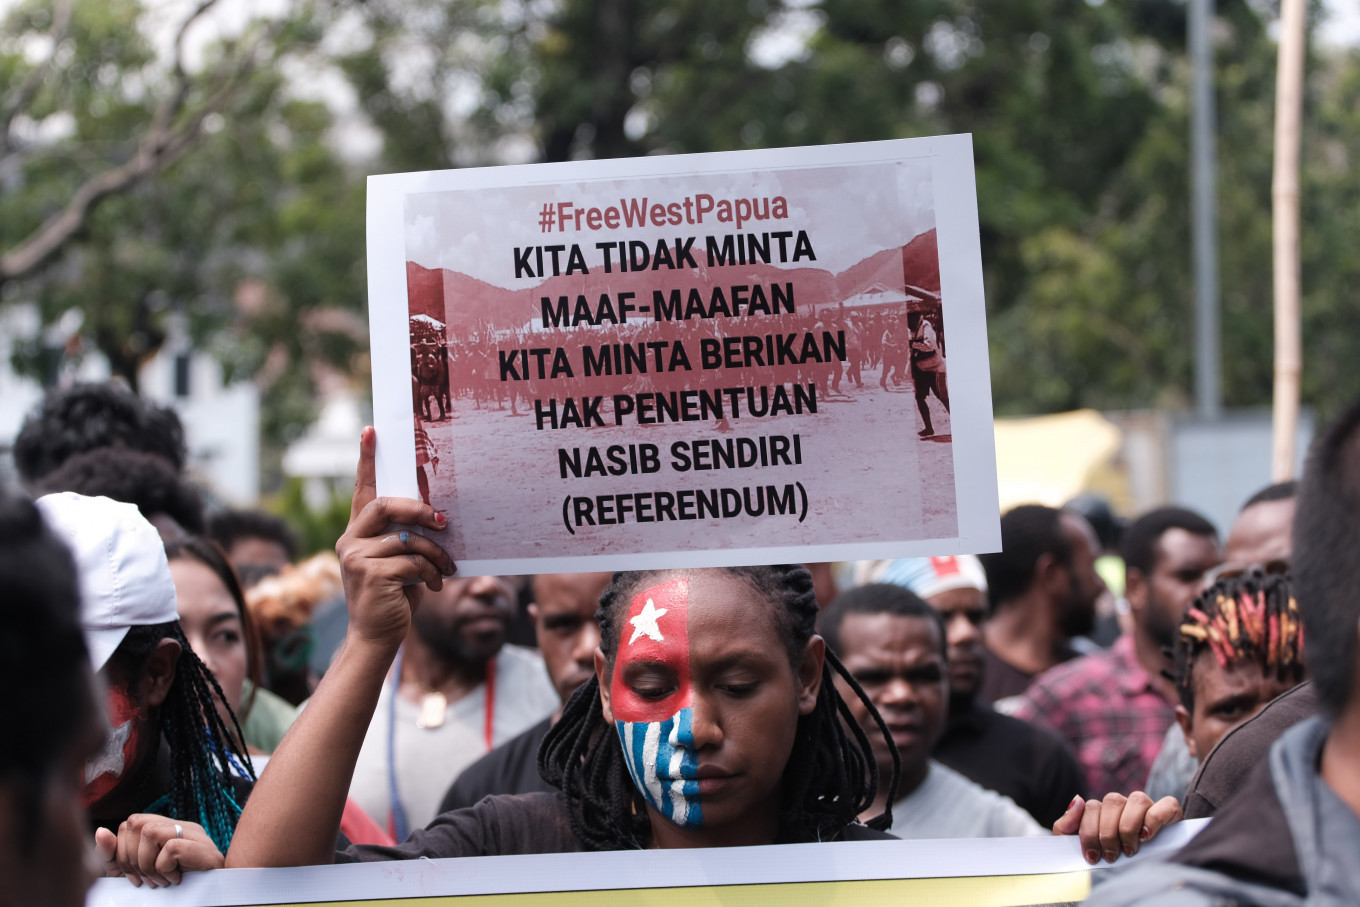 Internet ban during Papua antiracist unrest ruled unlawful